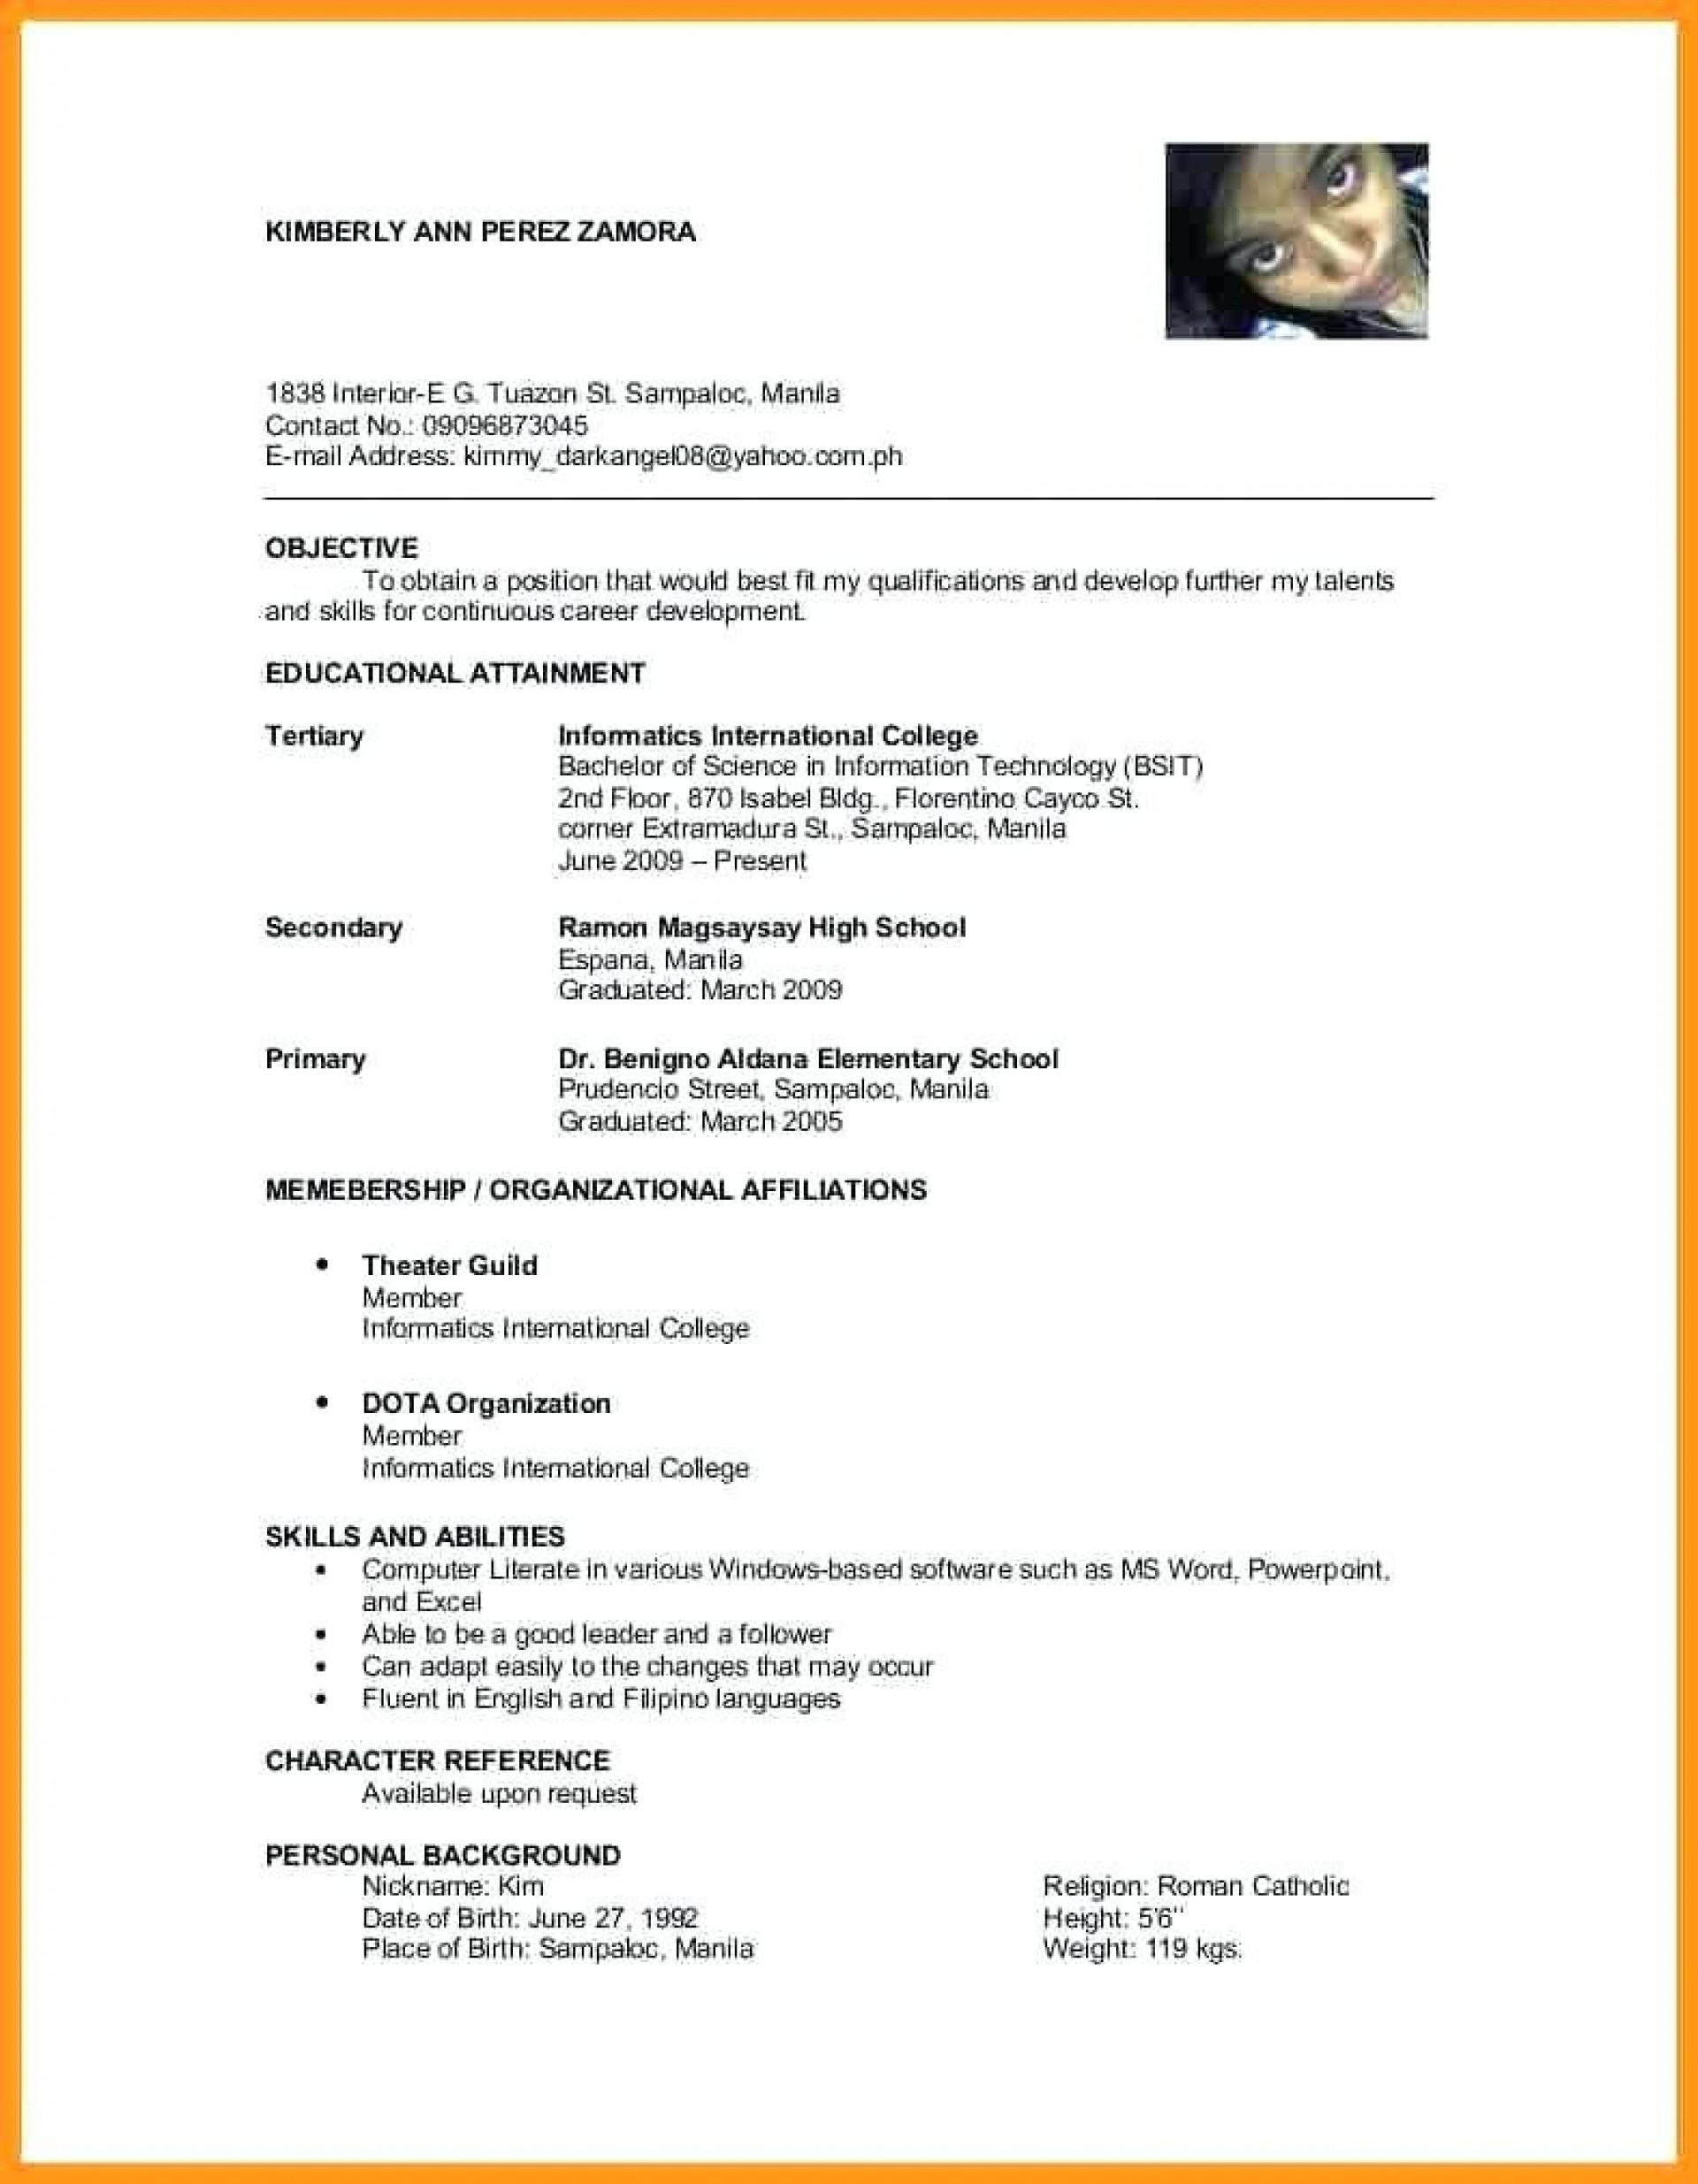 resume character reference damba personal references on templates in lawyer jobs letter Resume Personal References On Resume